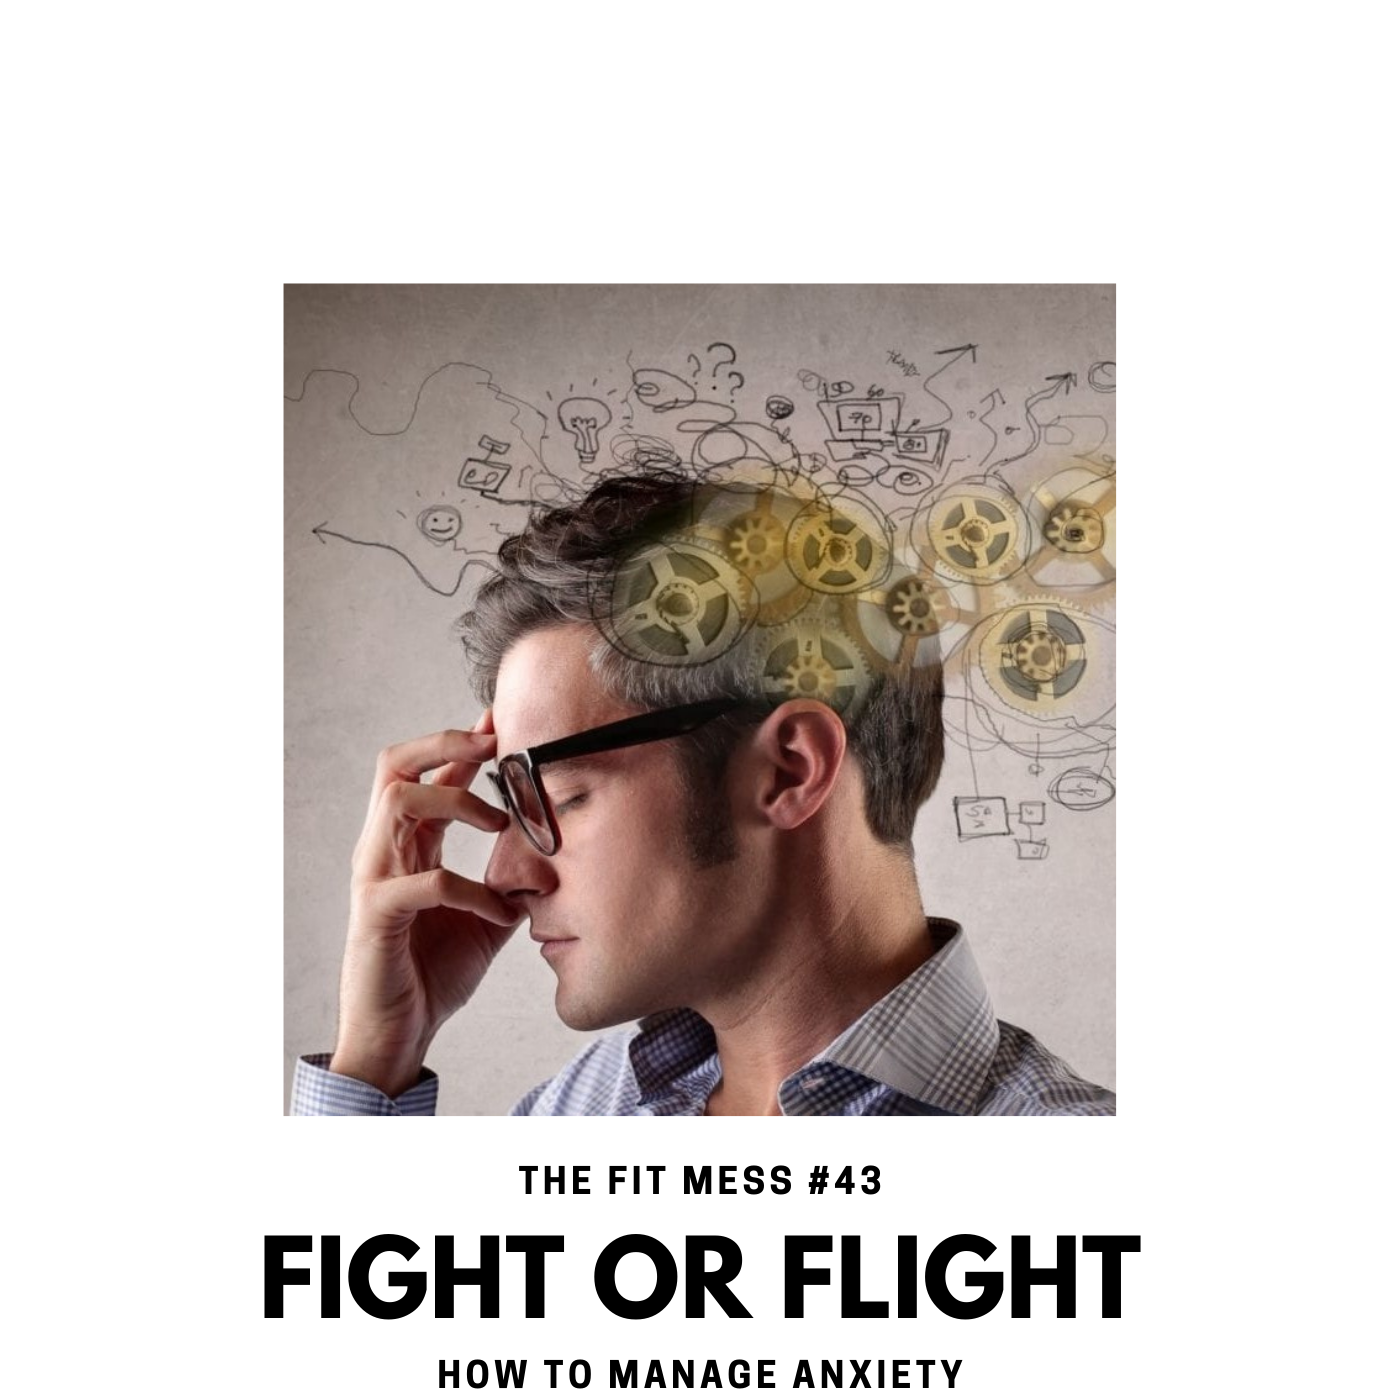 Fight or Flight: How to Manage Anxiety